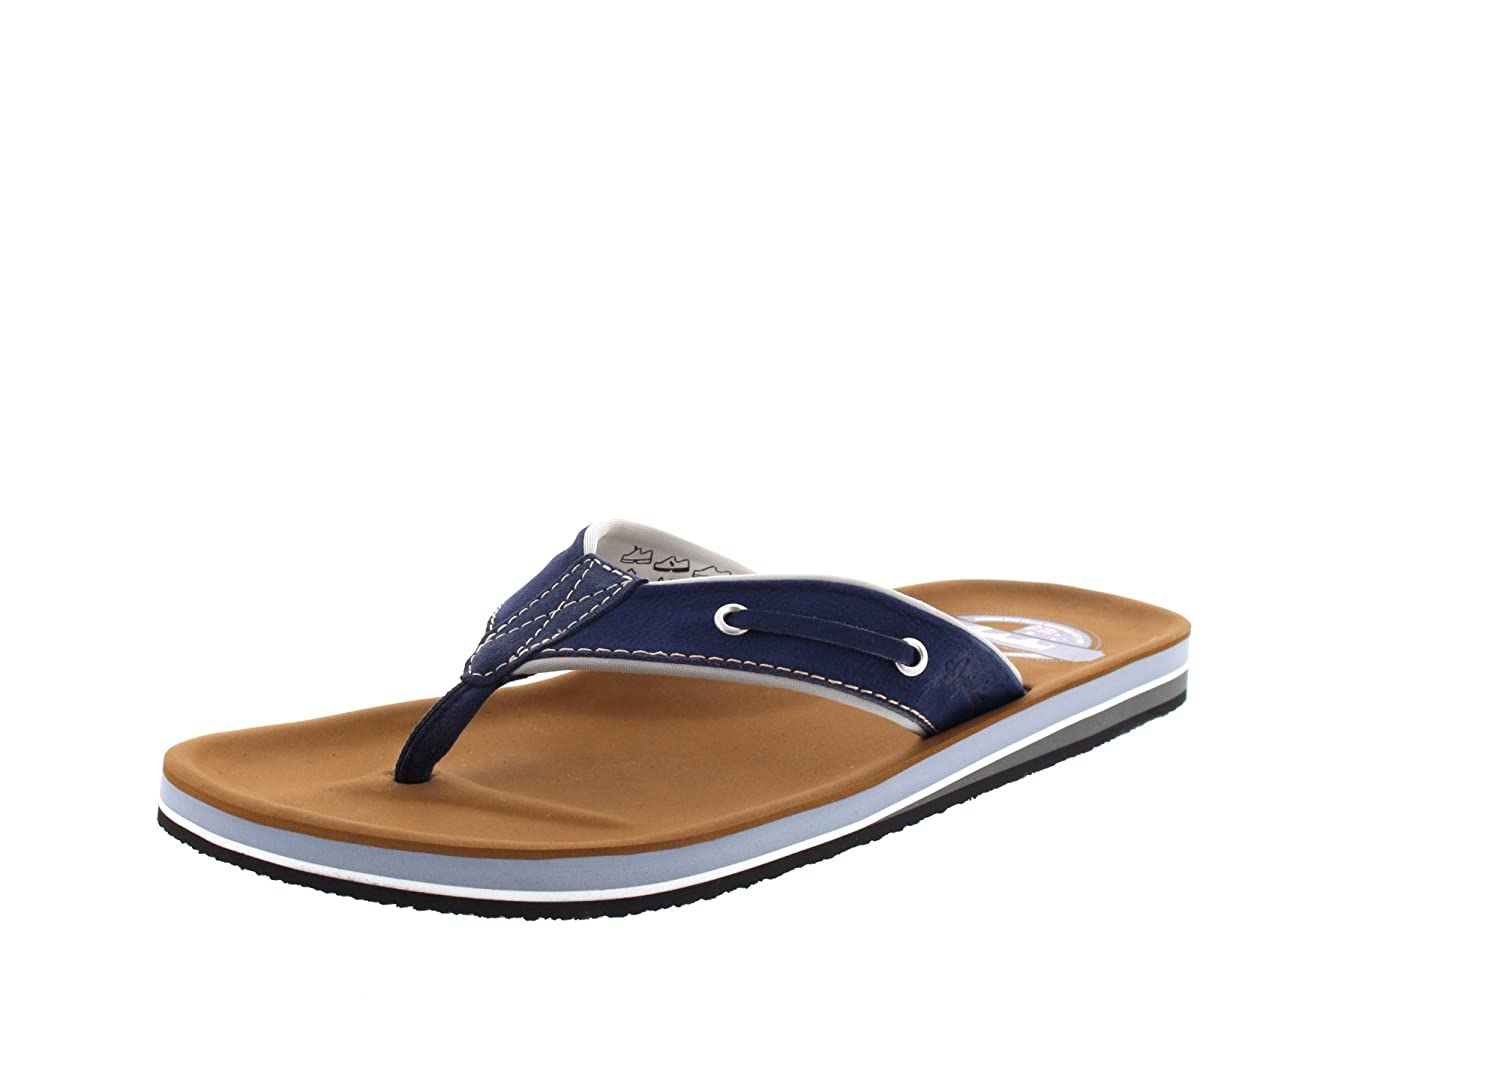 TALLA 41 EU. AUSTRALIAN Shoes - EGMOND AT Sea - Blue